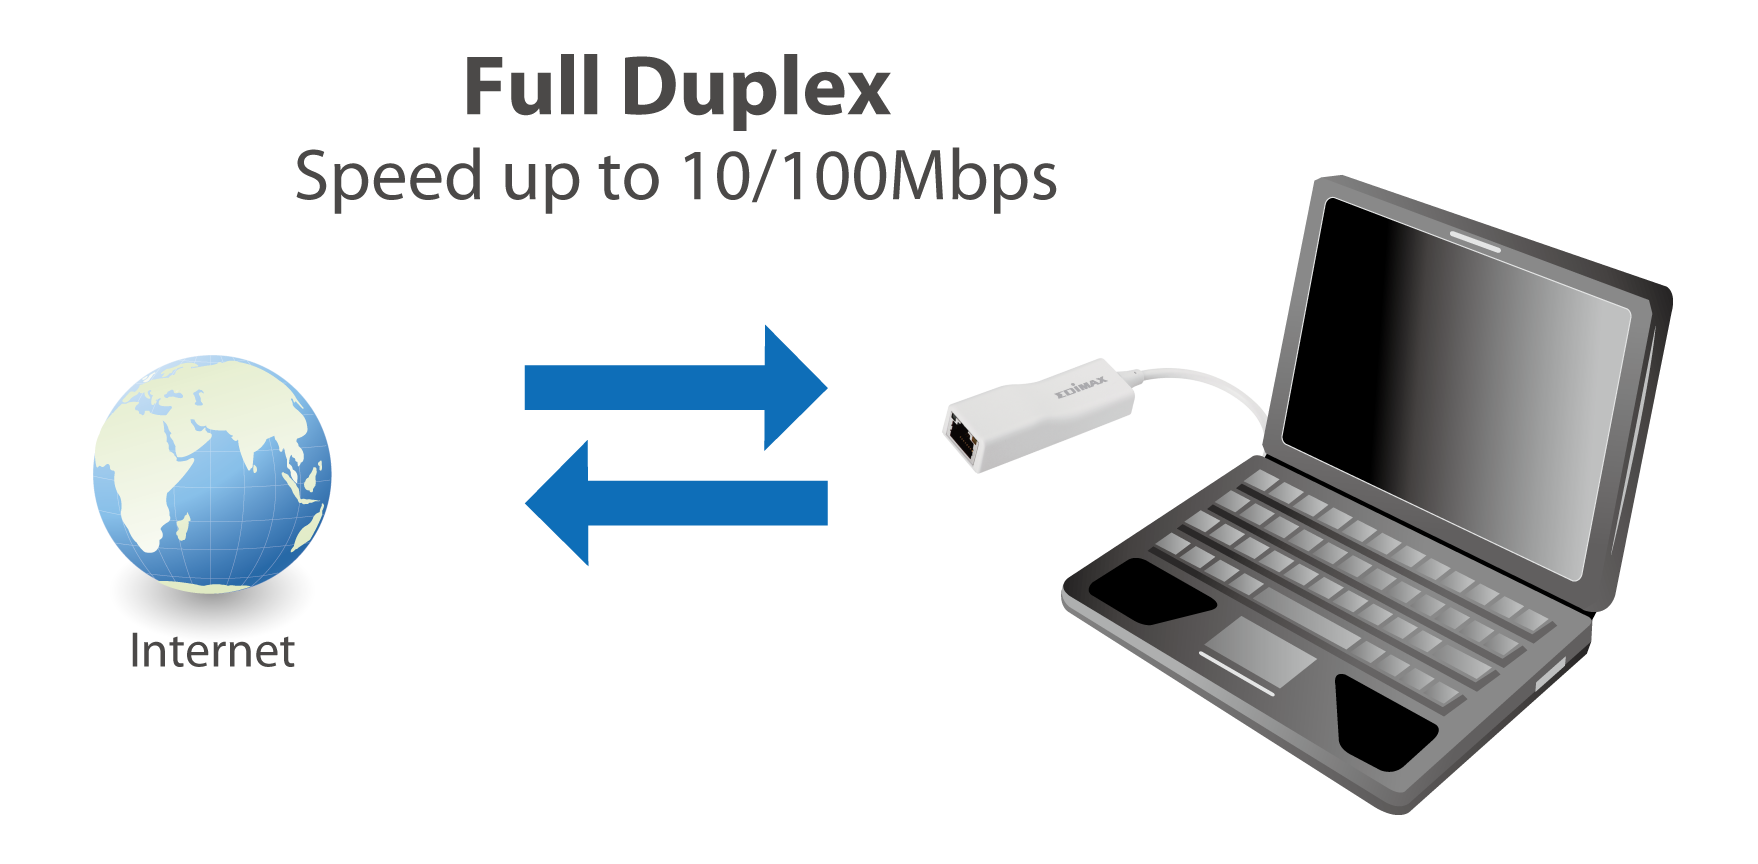 Edimax USB 2.0 Fast Ethernet Adapter EU-4208_full_duplex.png